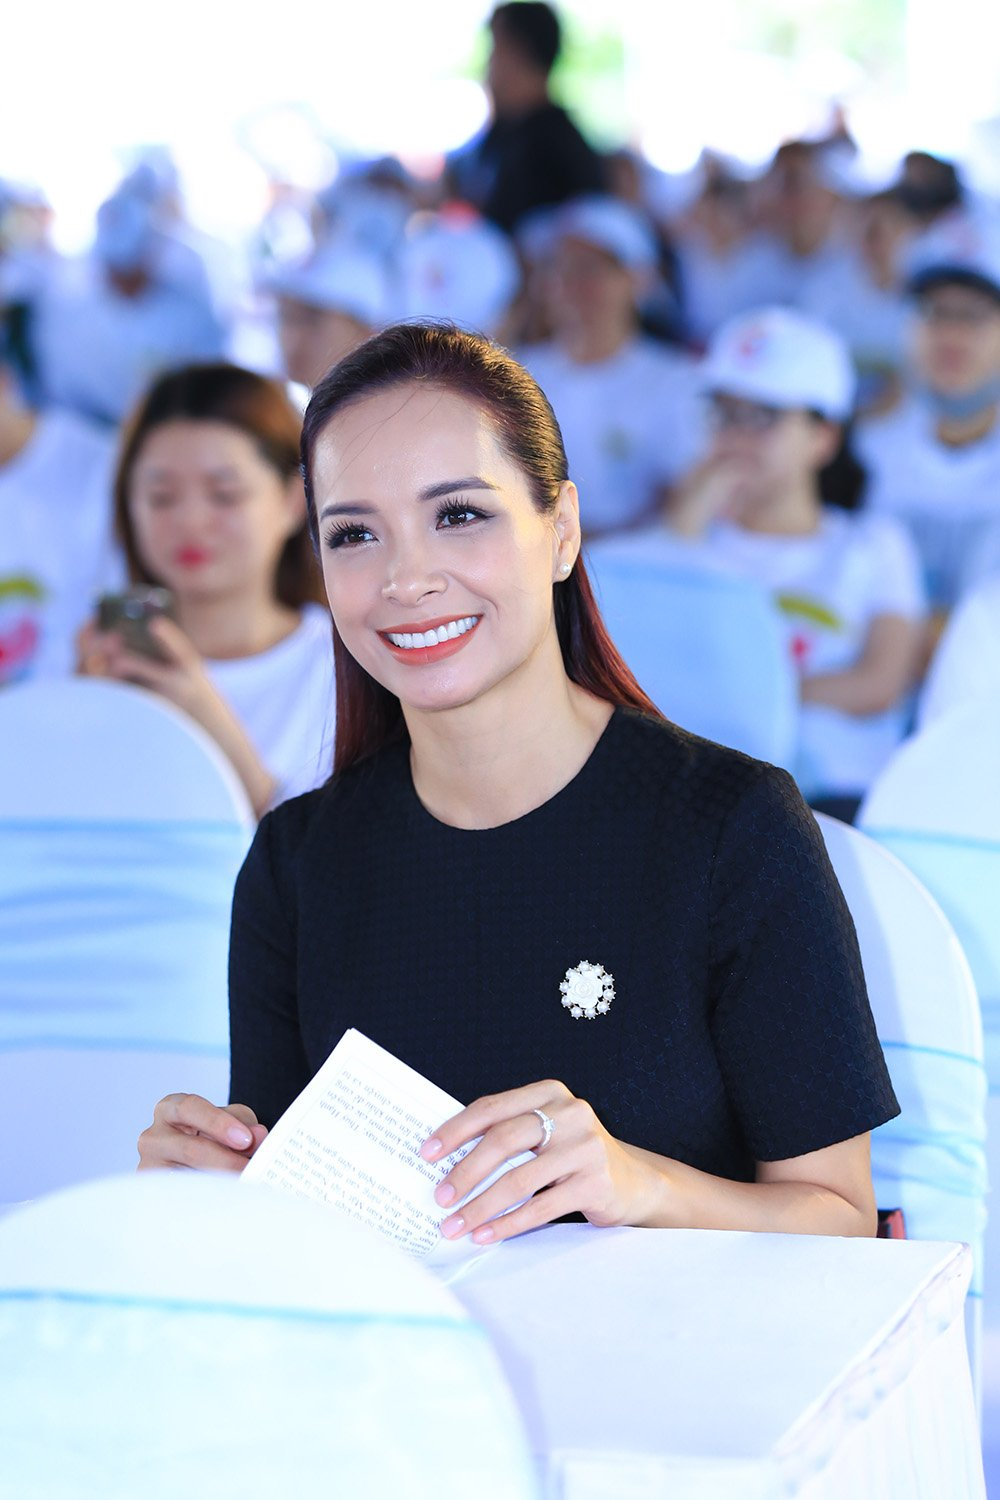 O tuoi 40, Thuy Hanh van tu tin do sac voi nu MC 9x hinh anh 1